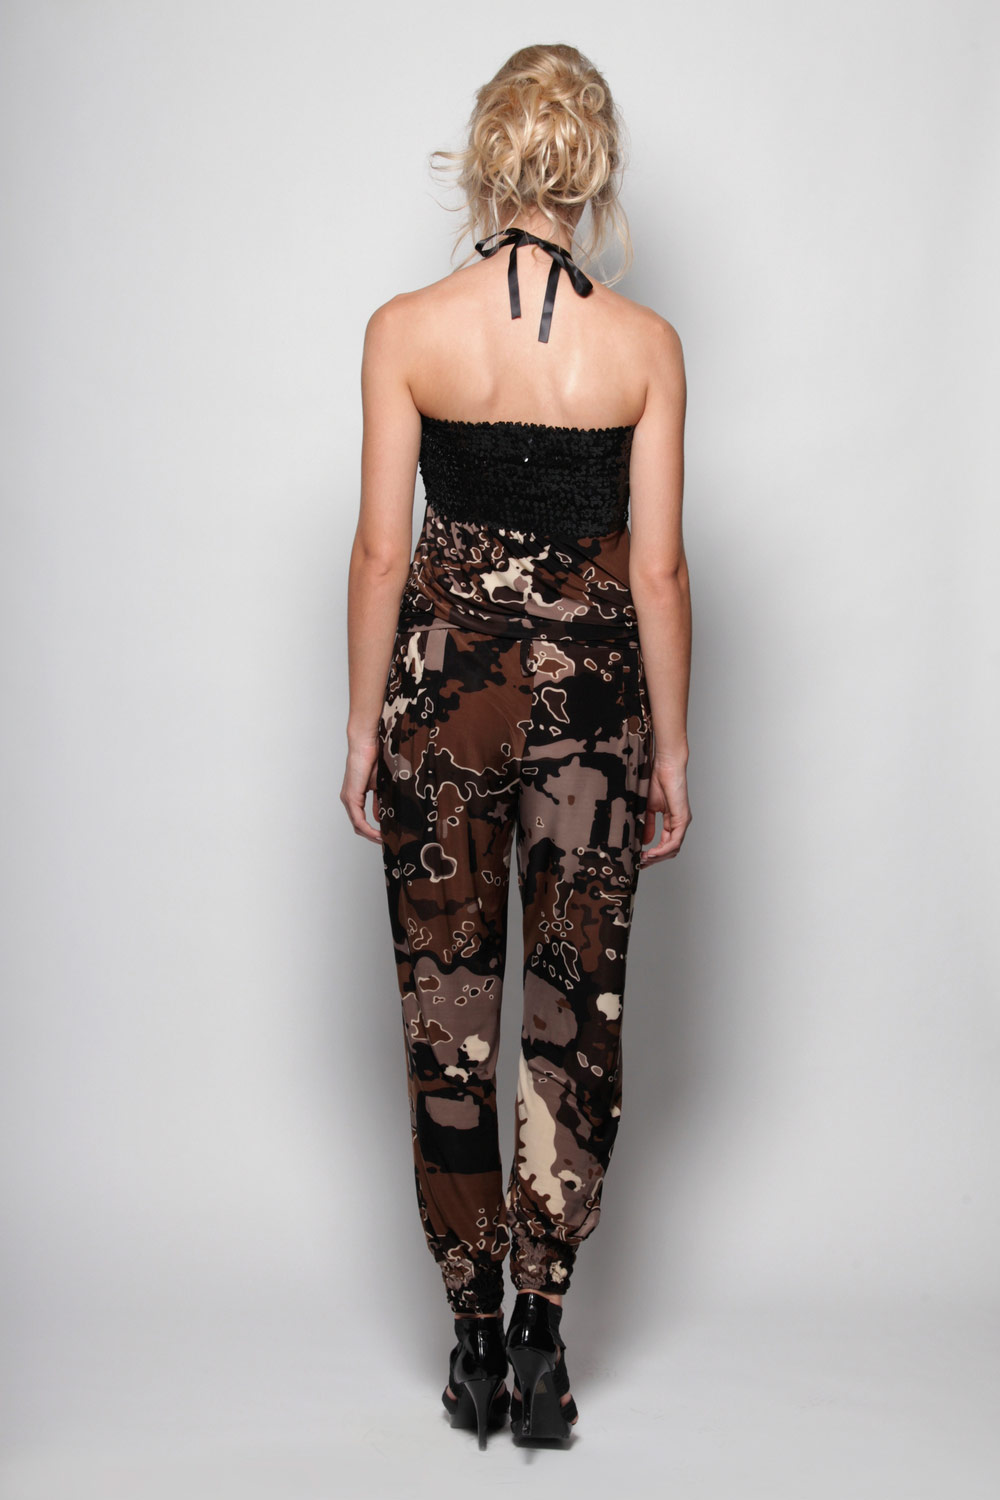 Boohoo-Reese-Sequin-Camoflage-Bodice-Jumpsuit-in-Brown-BNWT